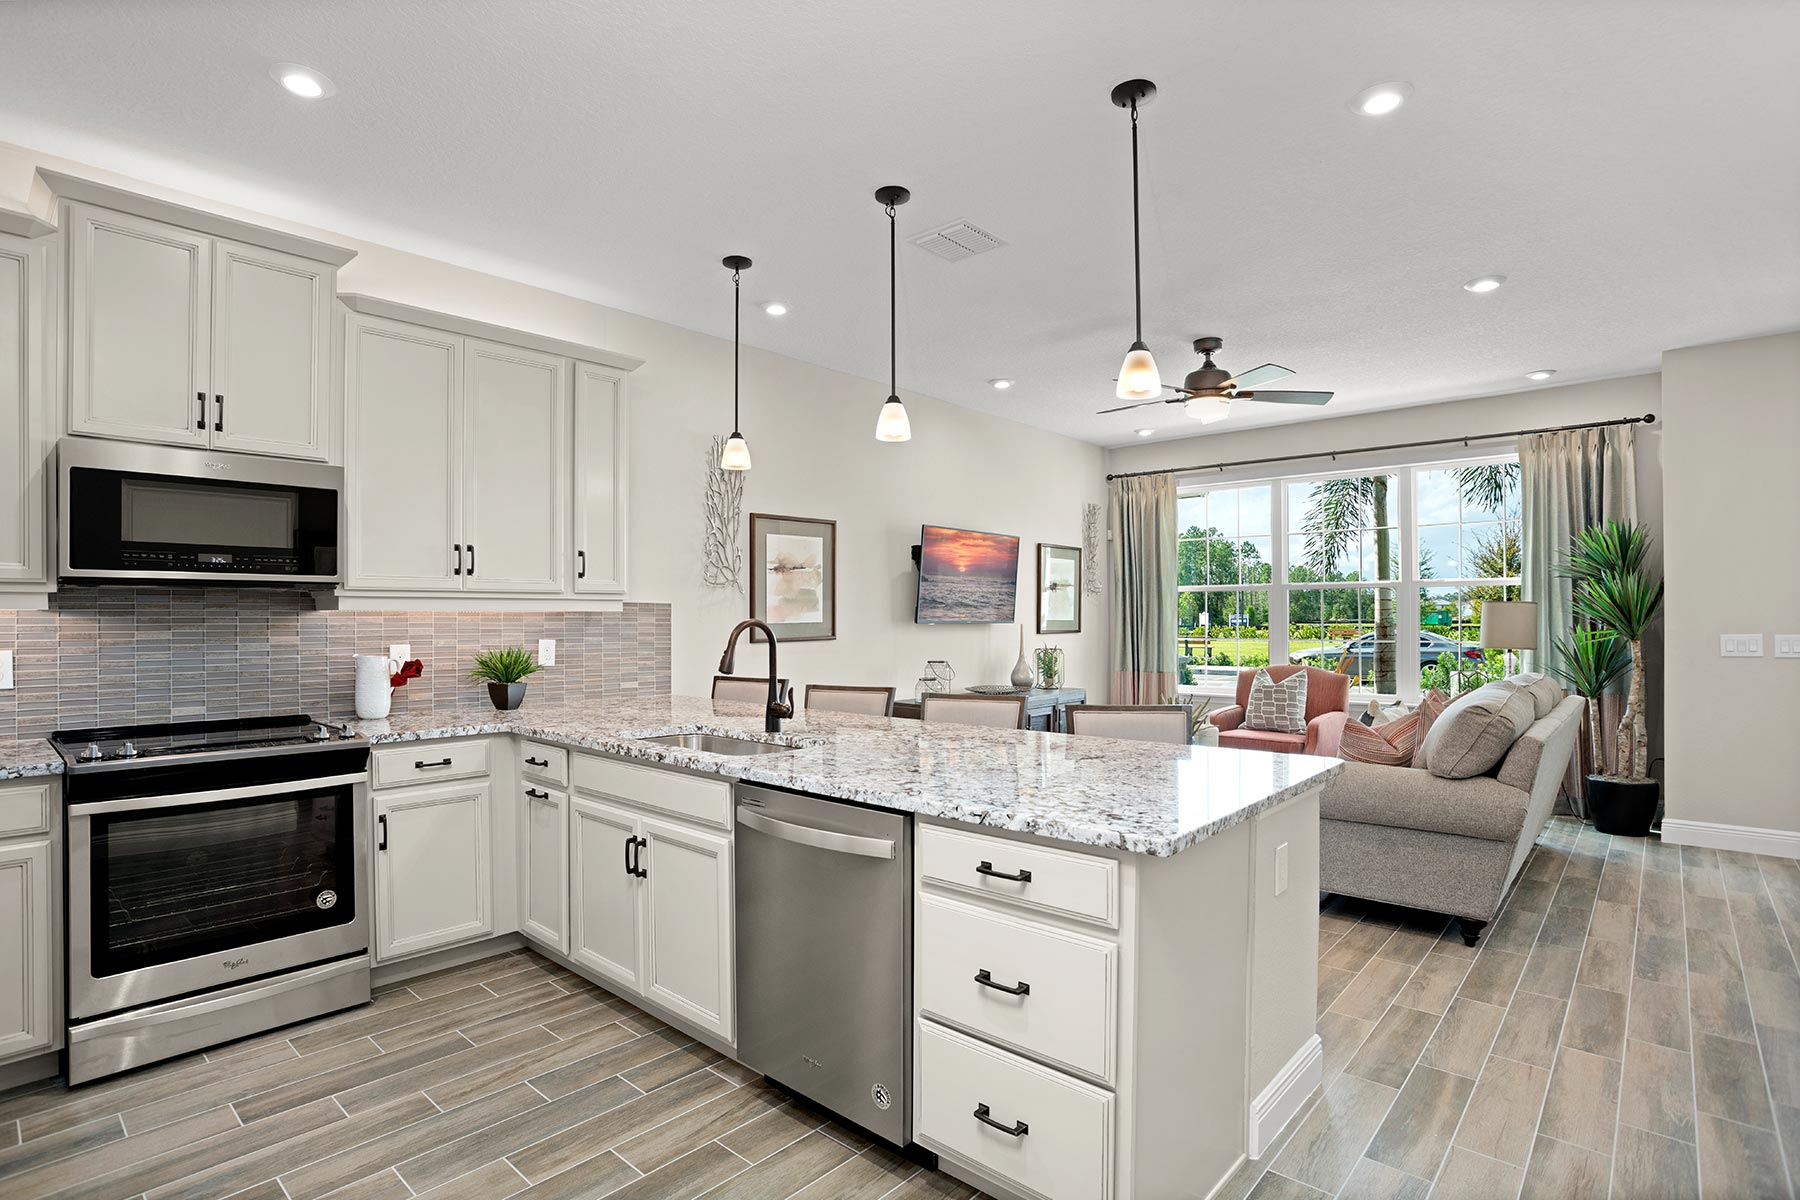 Amber Plan Kitchen at Legado in Windermere Florida by Mattamy Homes